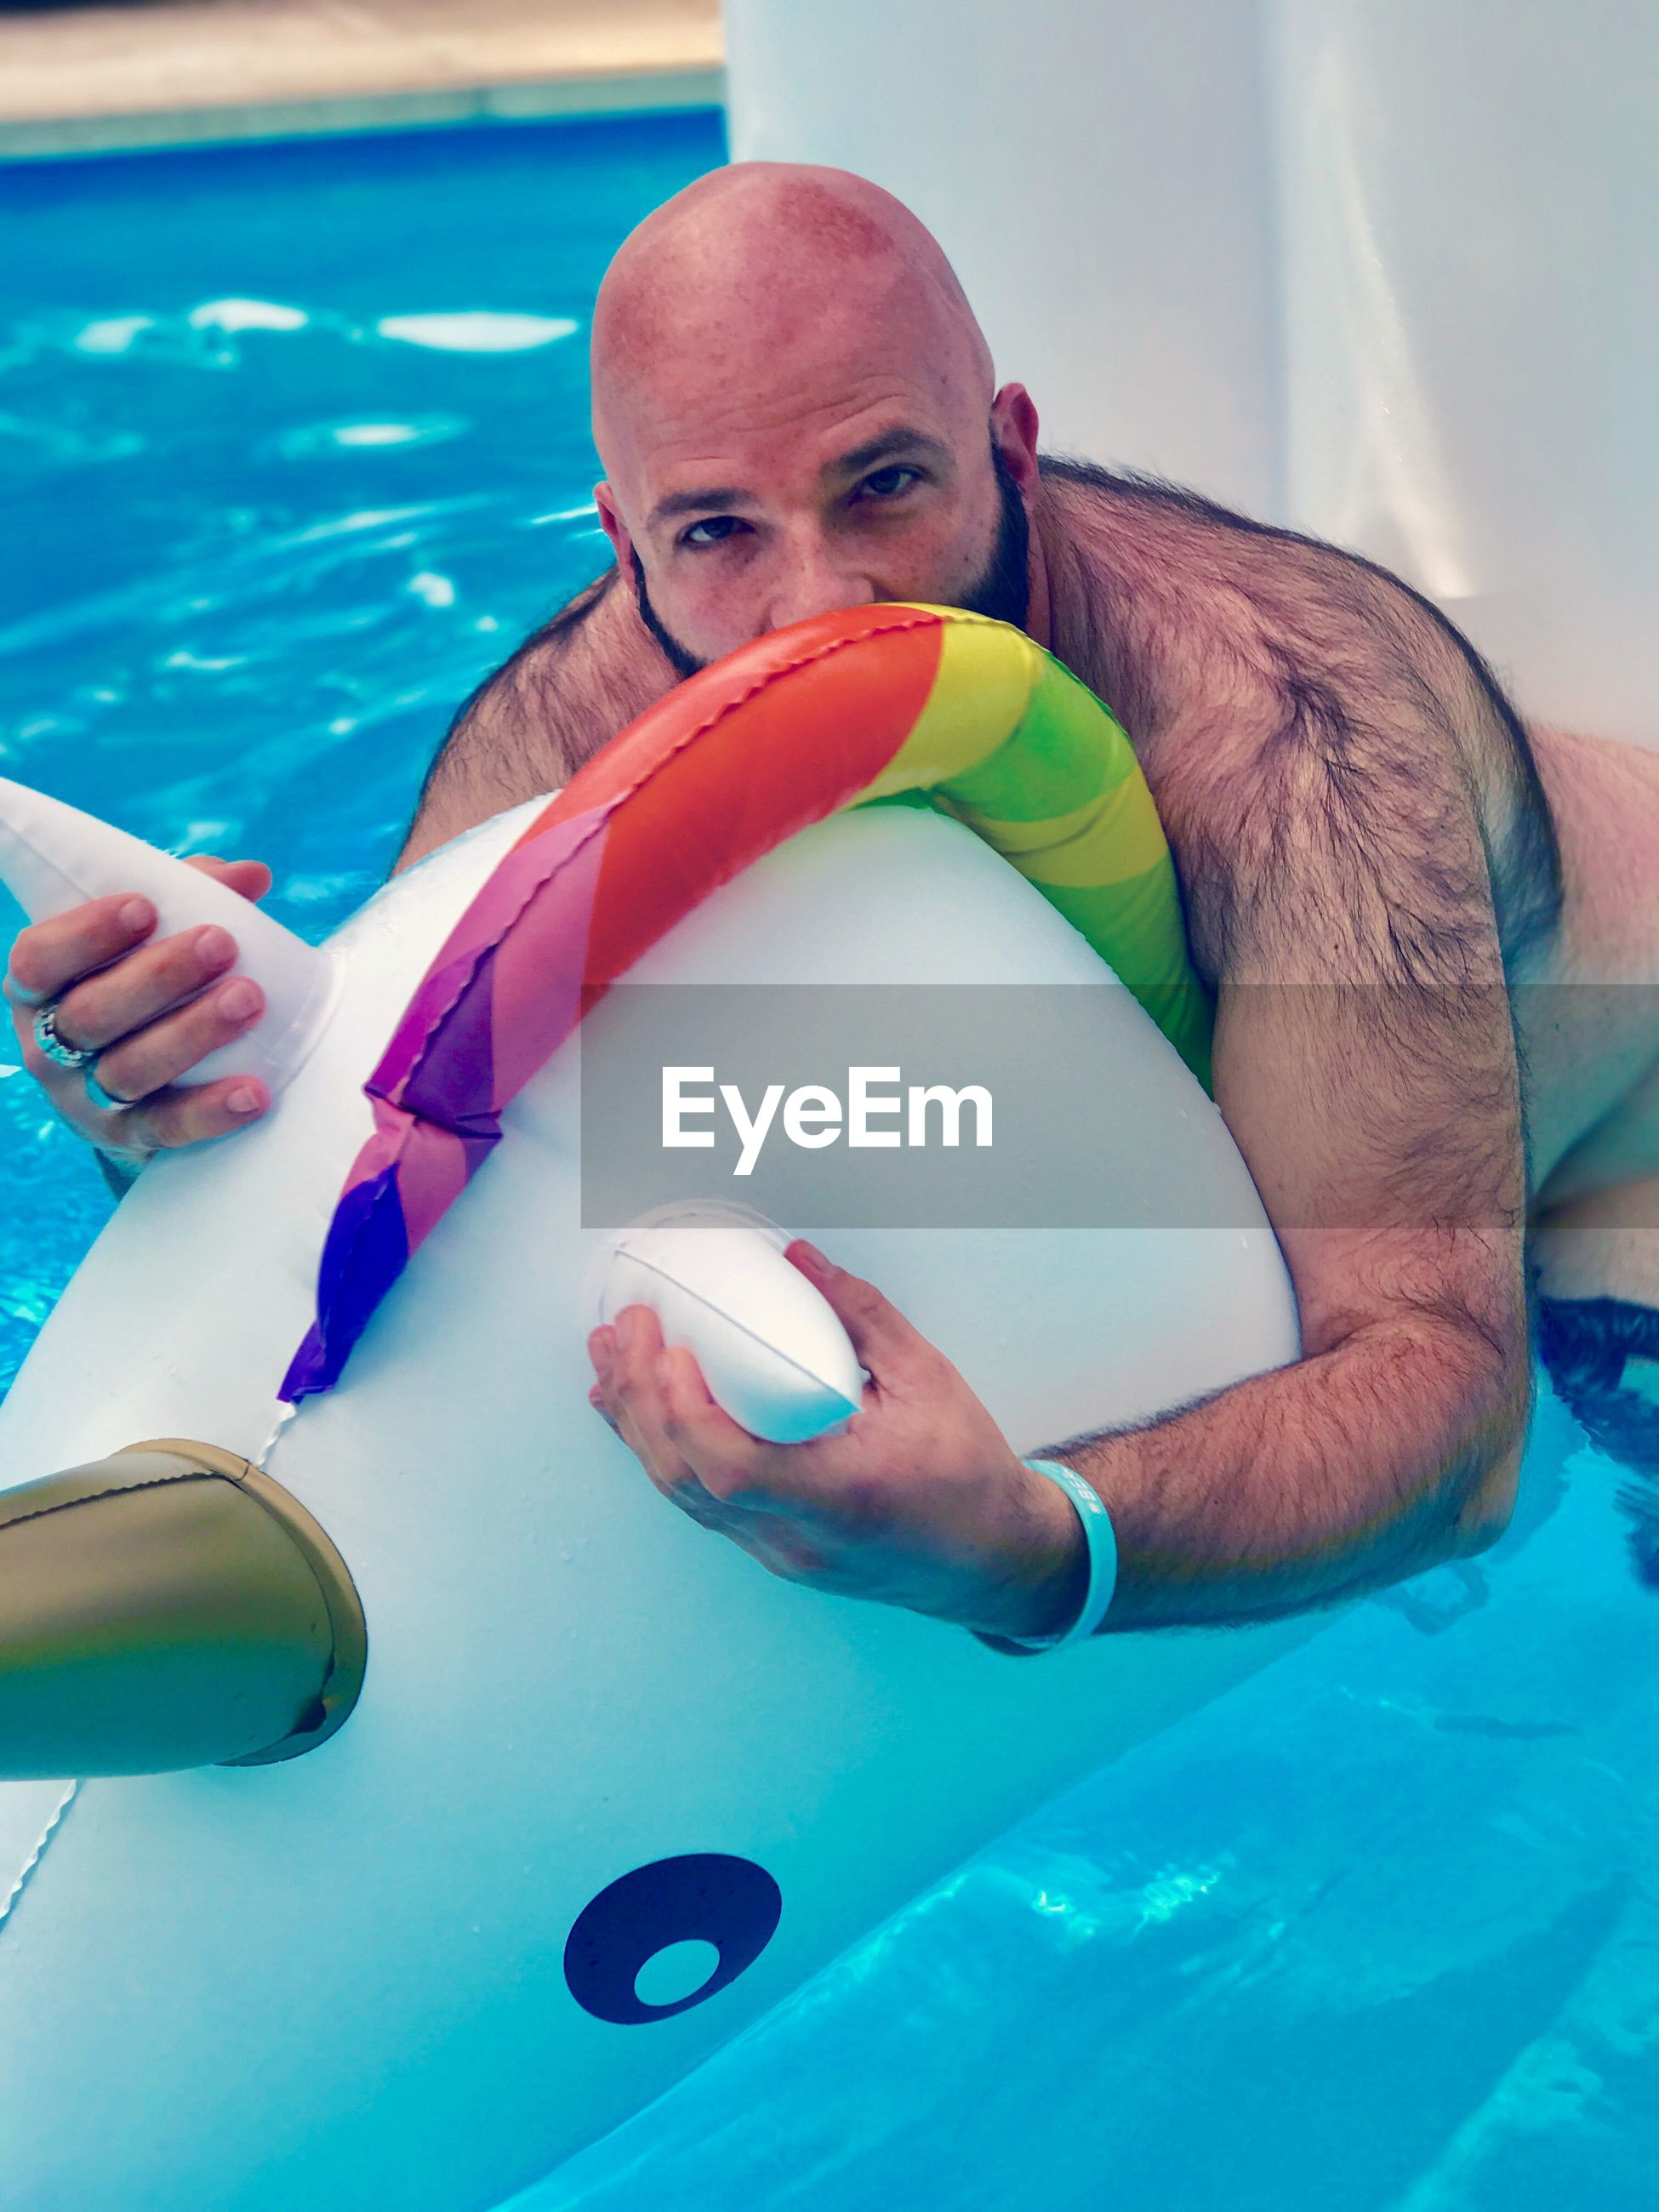 Portrait of man sitting on inflatable toy in swimming pool